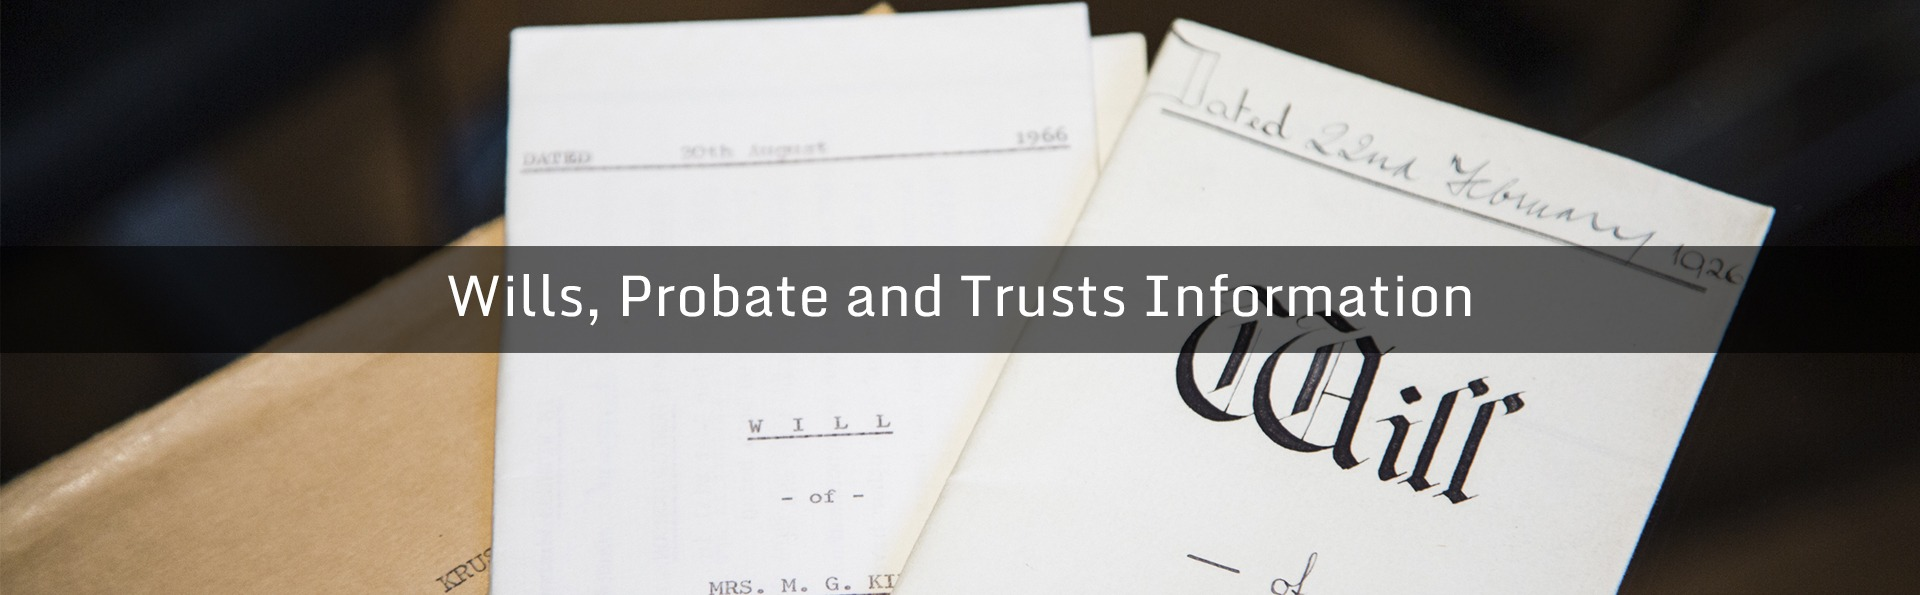 Wills Probate and Trusts information Bloomsbury Law UK